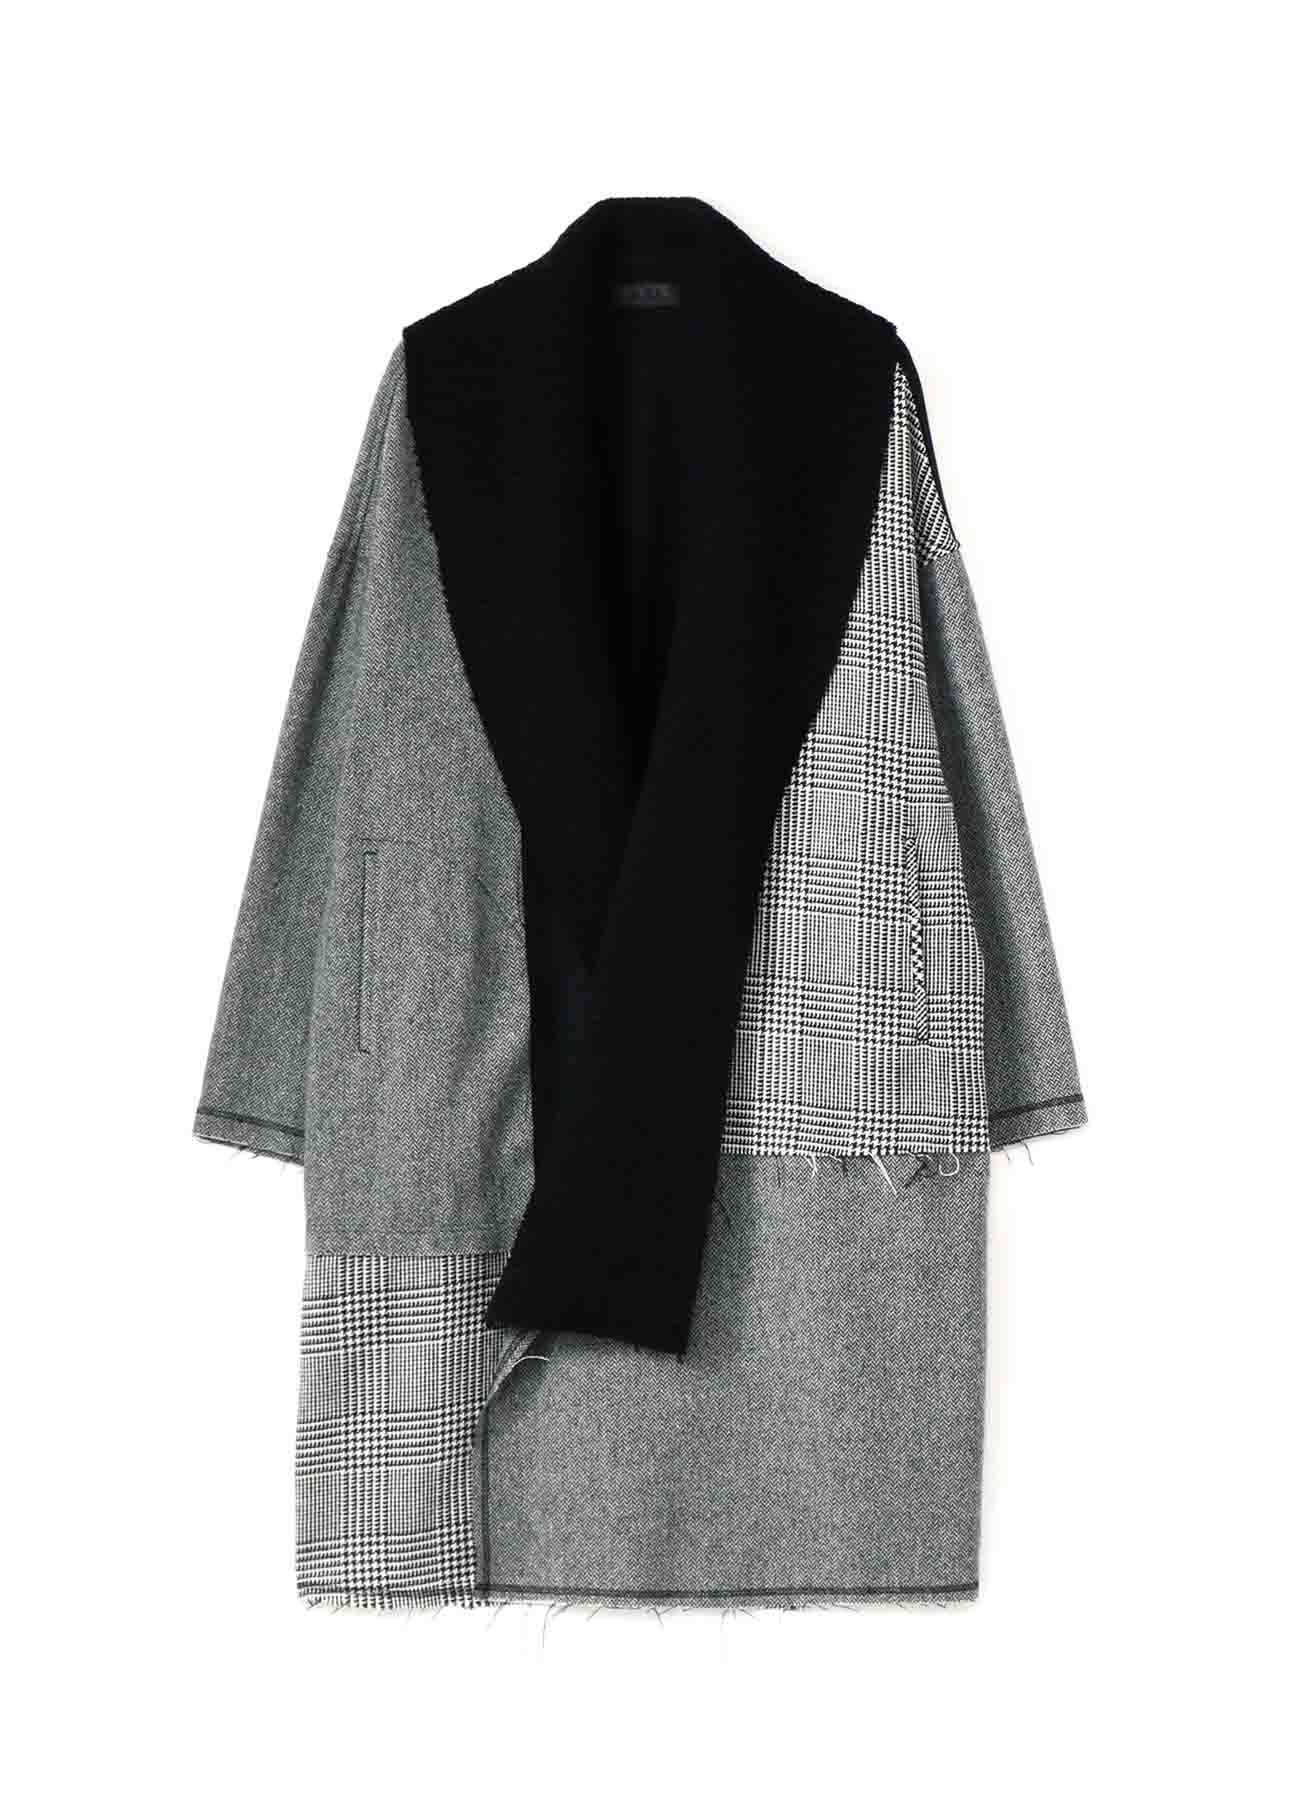 Crazy tweed/Mall knit Shawl Collar Big Gown Coat